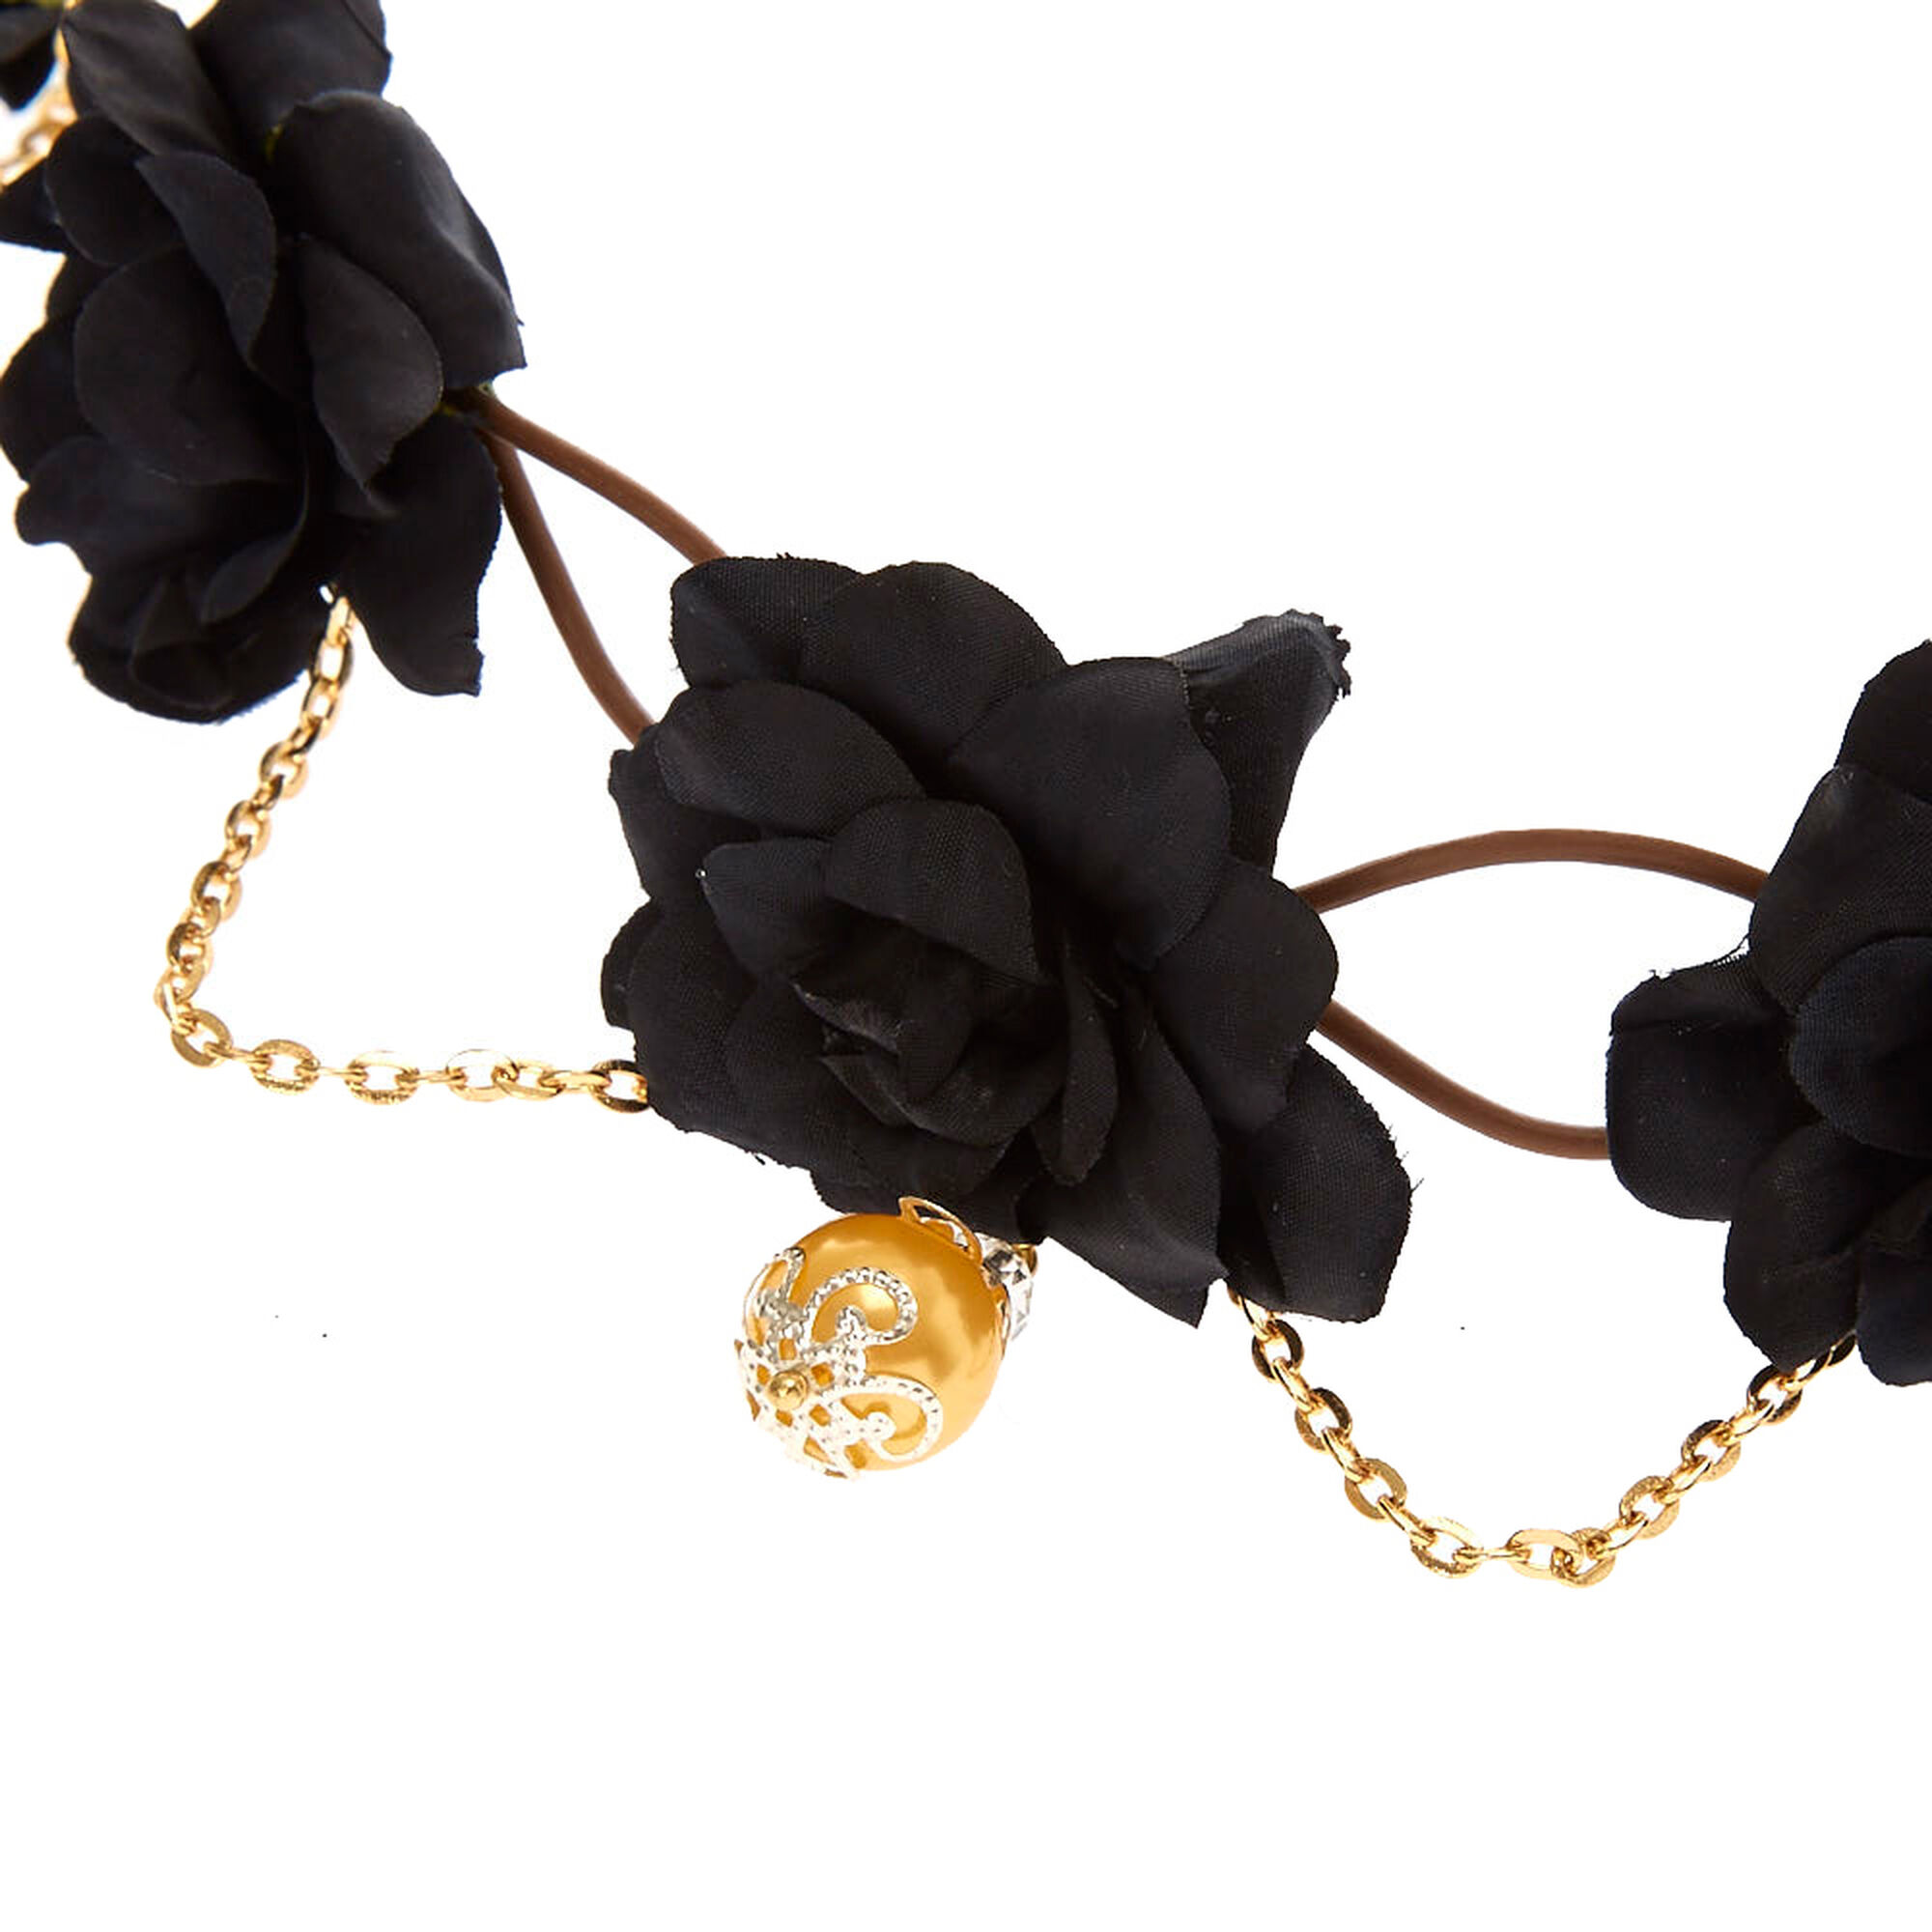 Gold chain black flower crown icing us gold chain black flower crown izmirmasajfo